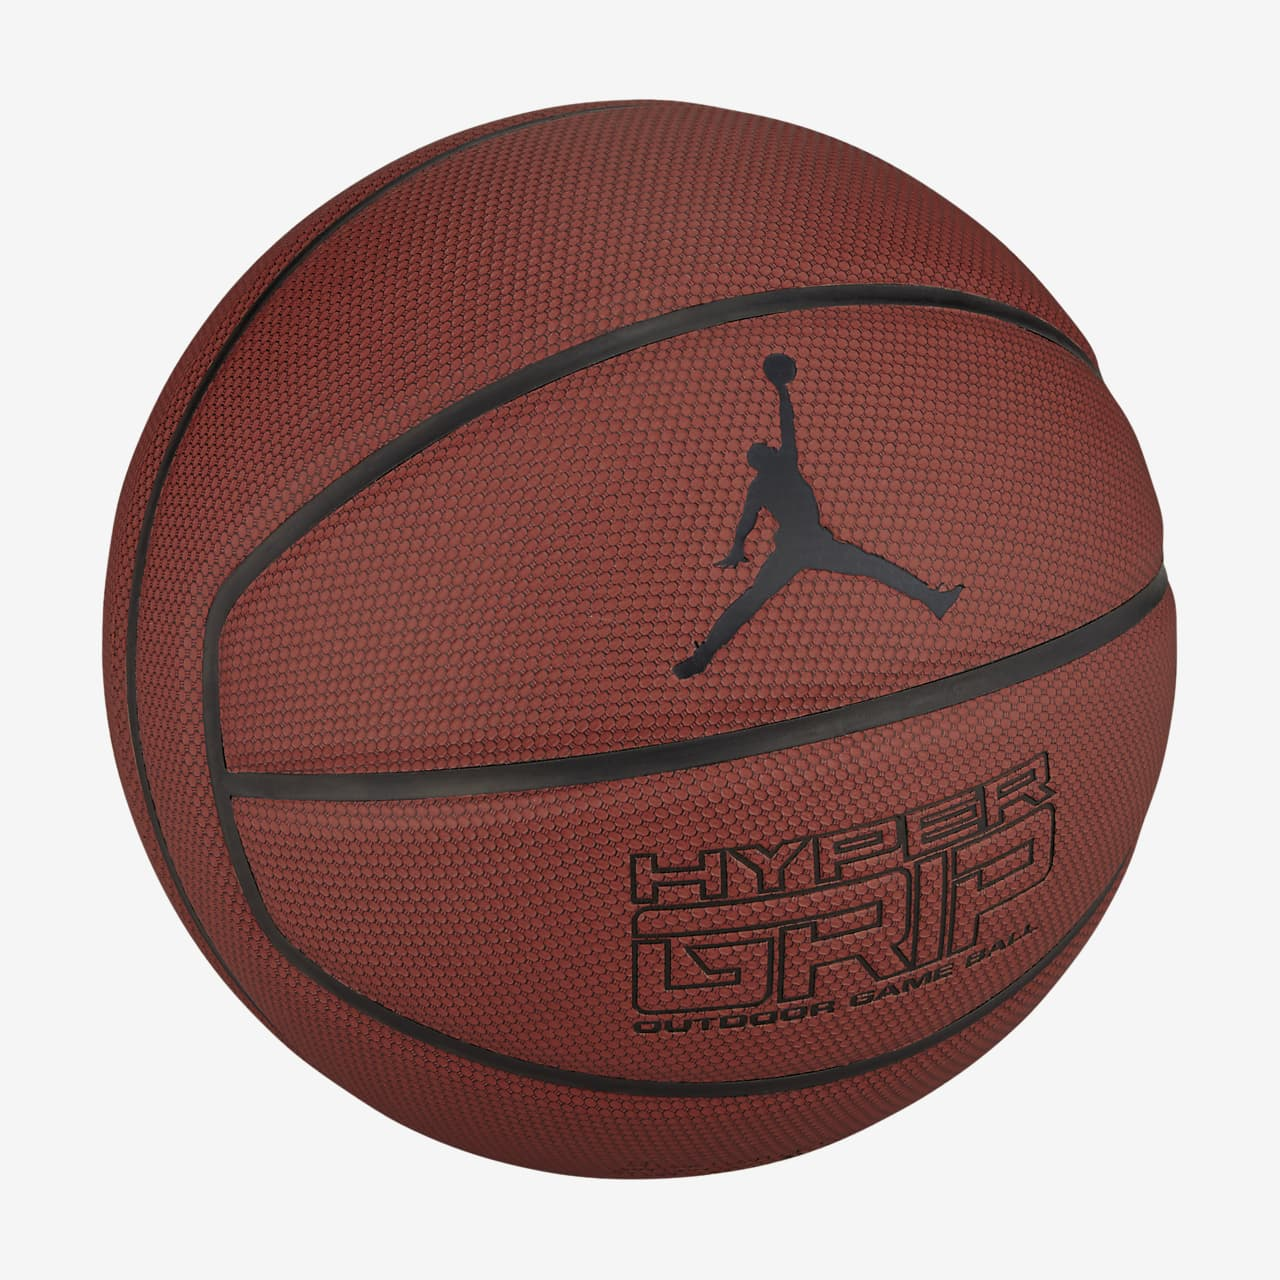 jordan hyper grip ball review